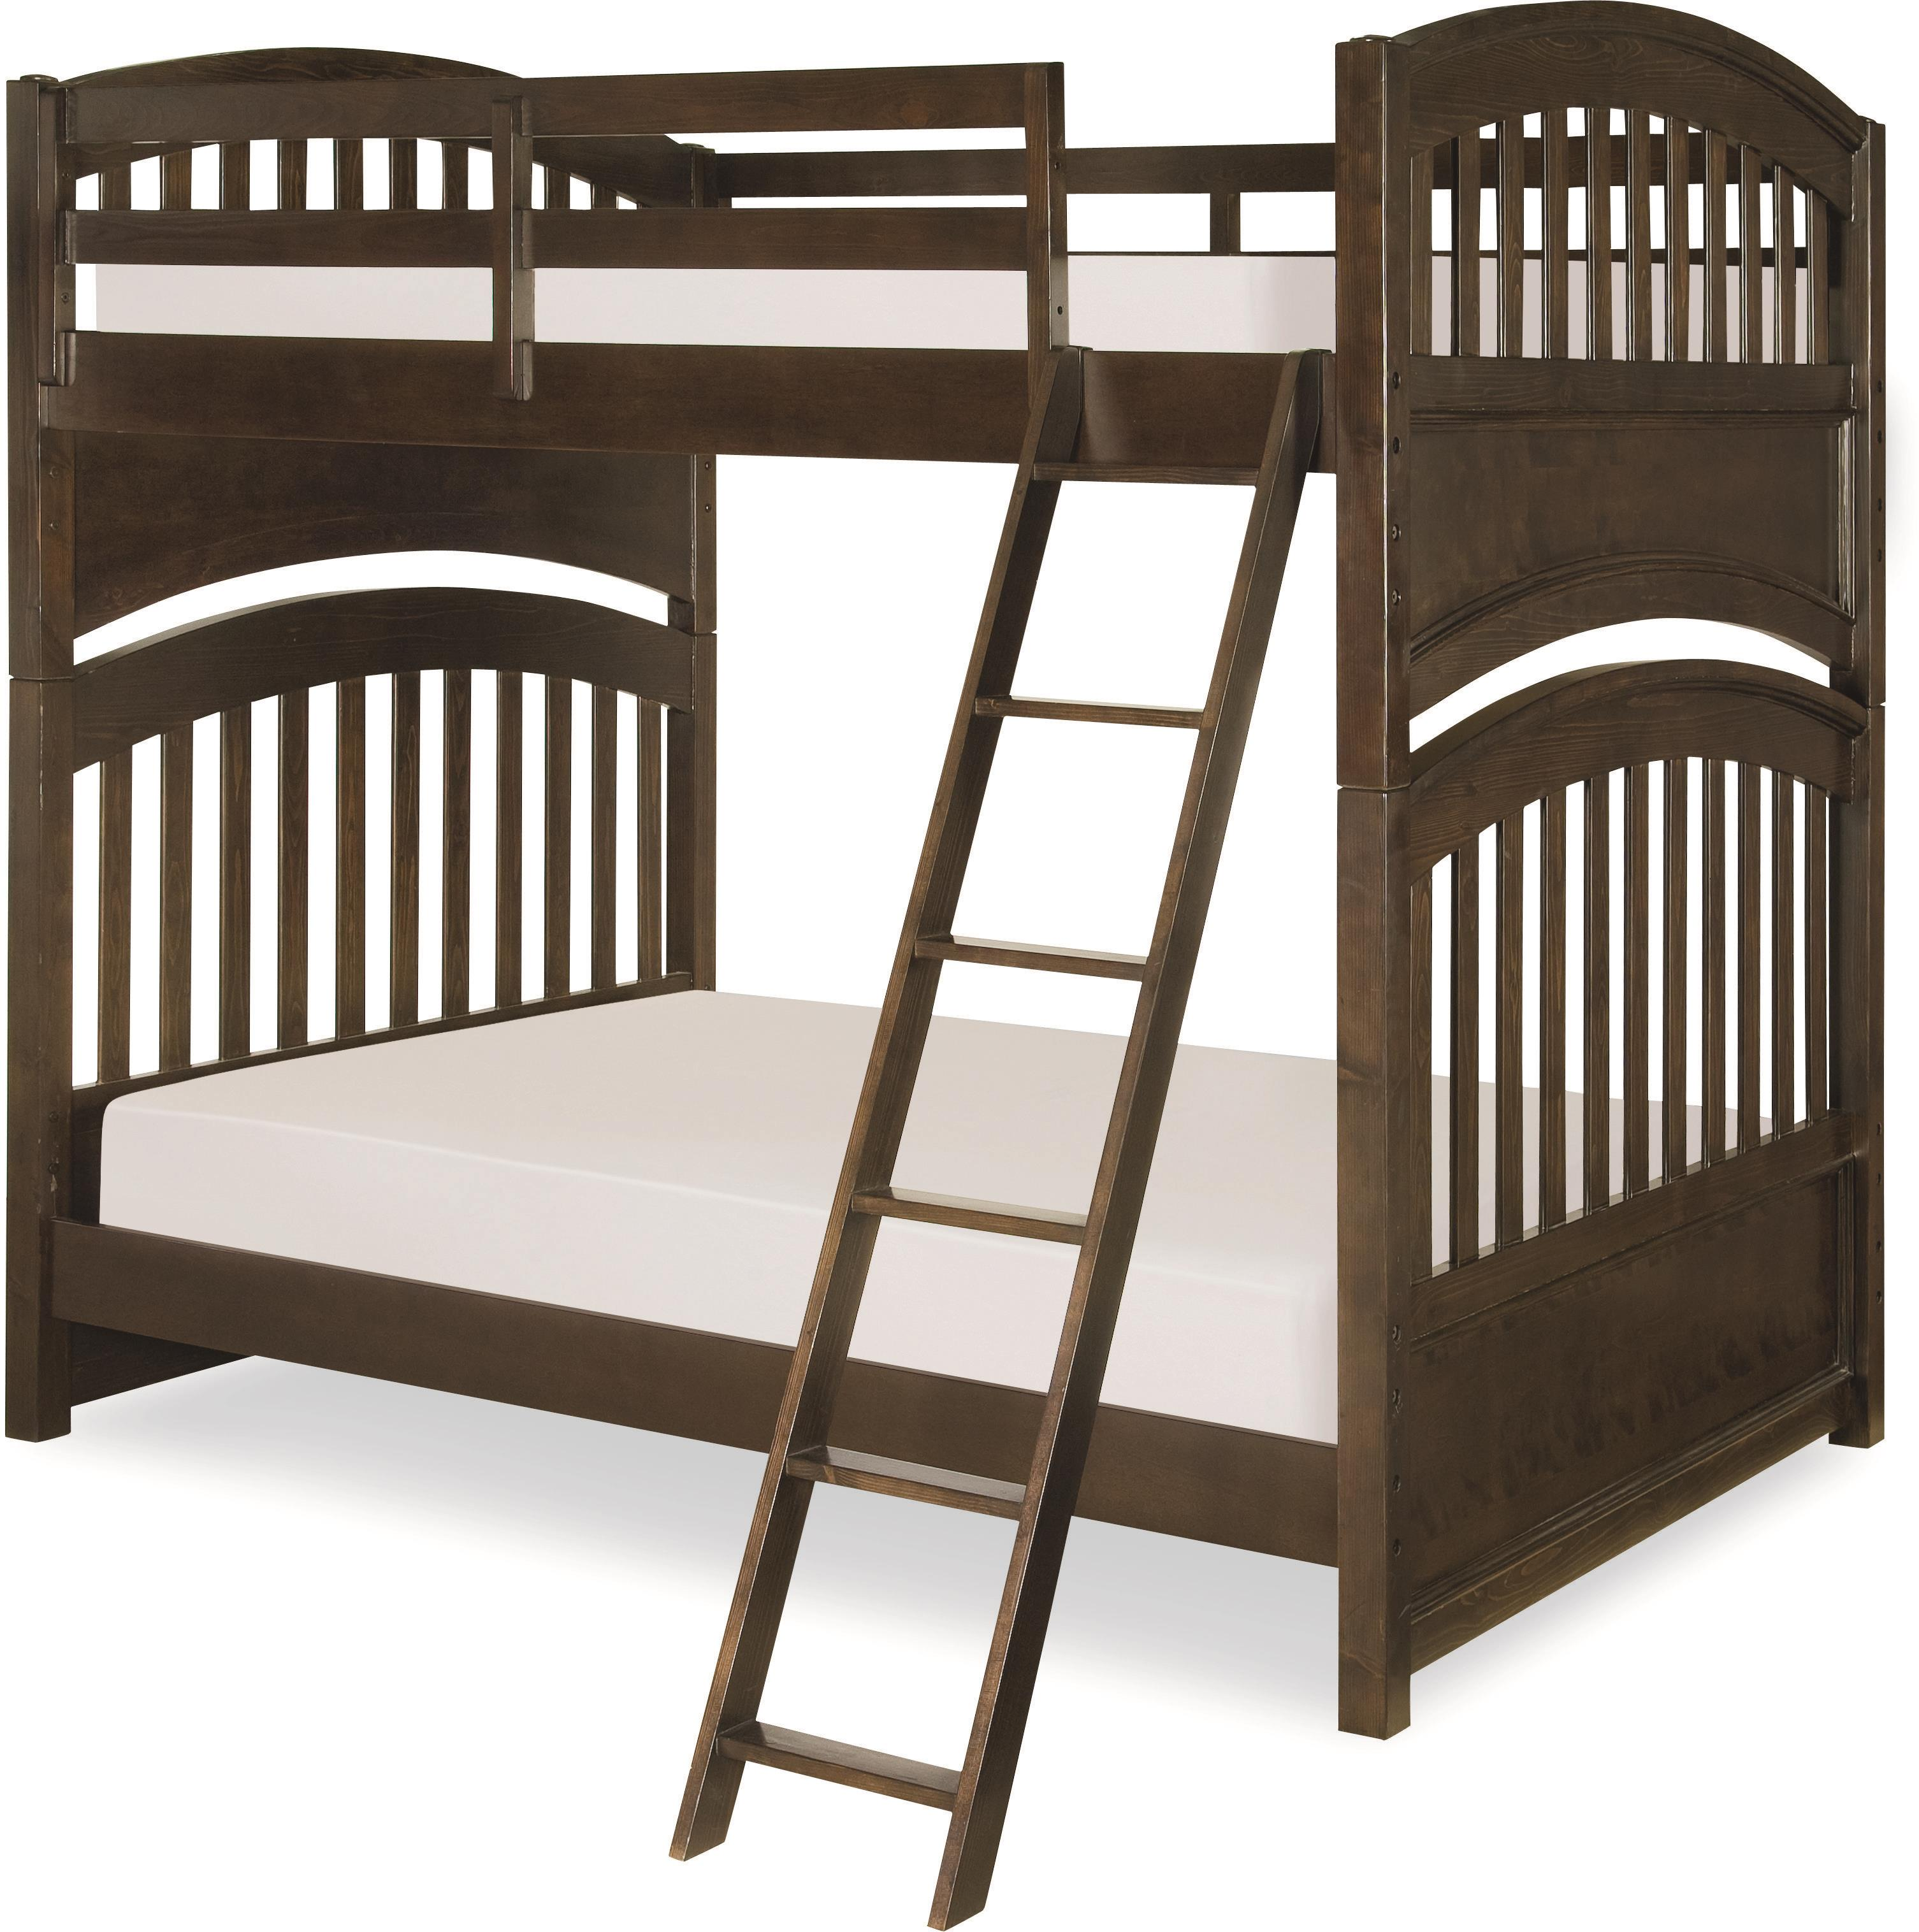 Legacy classic kids academy 5810 8150k full over full bunk for Legacy classic bed